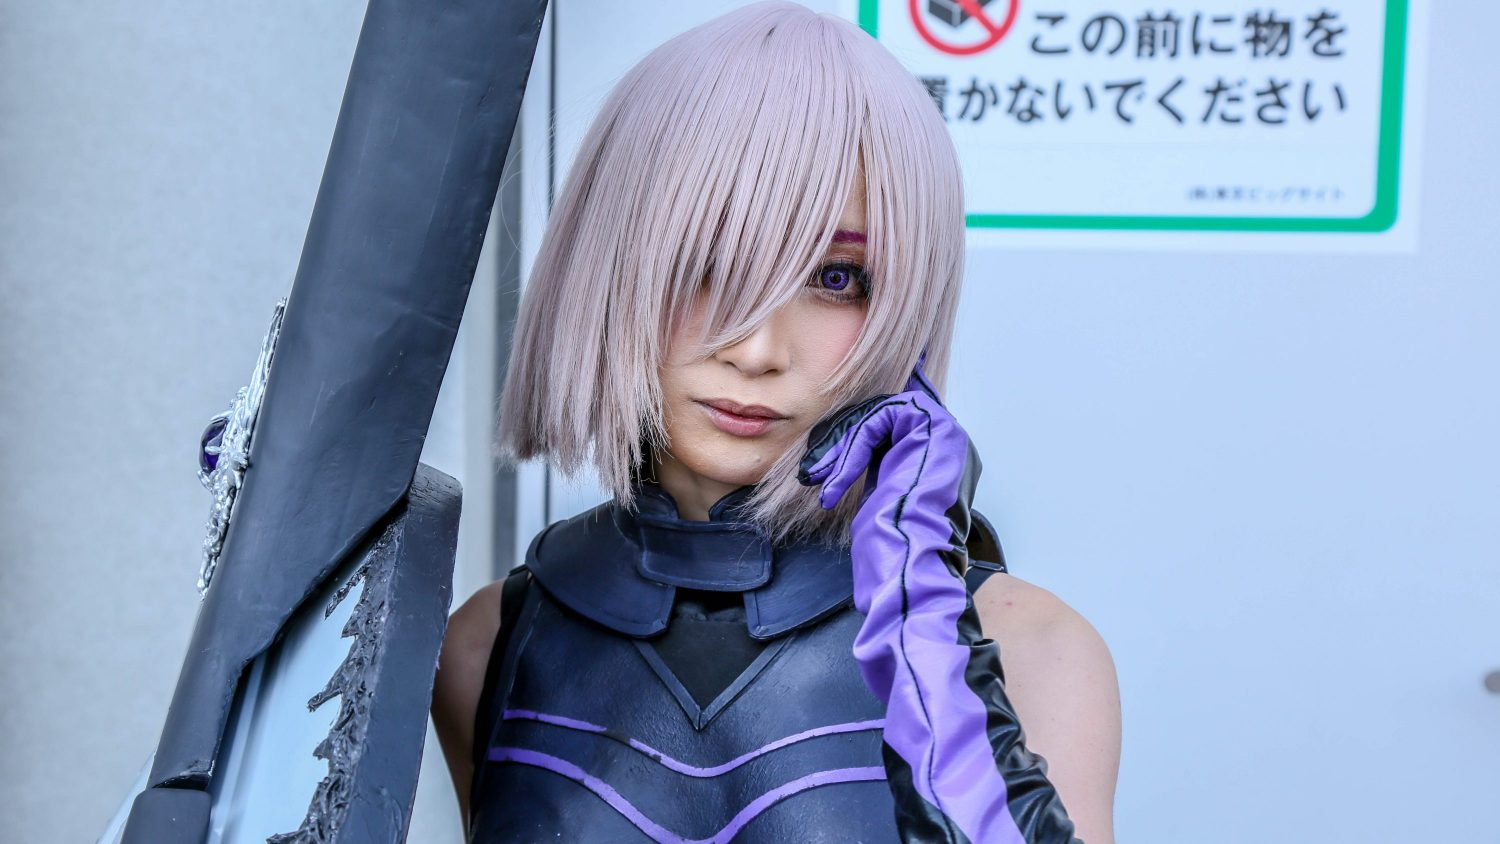 18+ japan 2018 anime: A Taste Of The Sexiest Cosplay From Anime Japan 2018